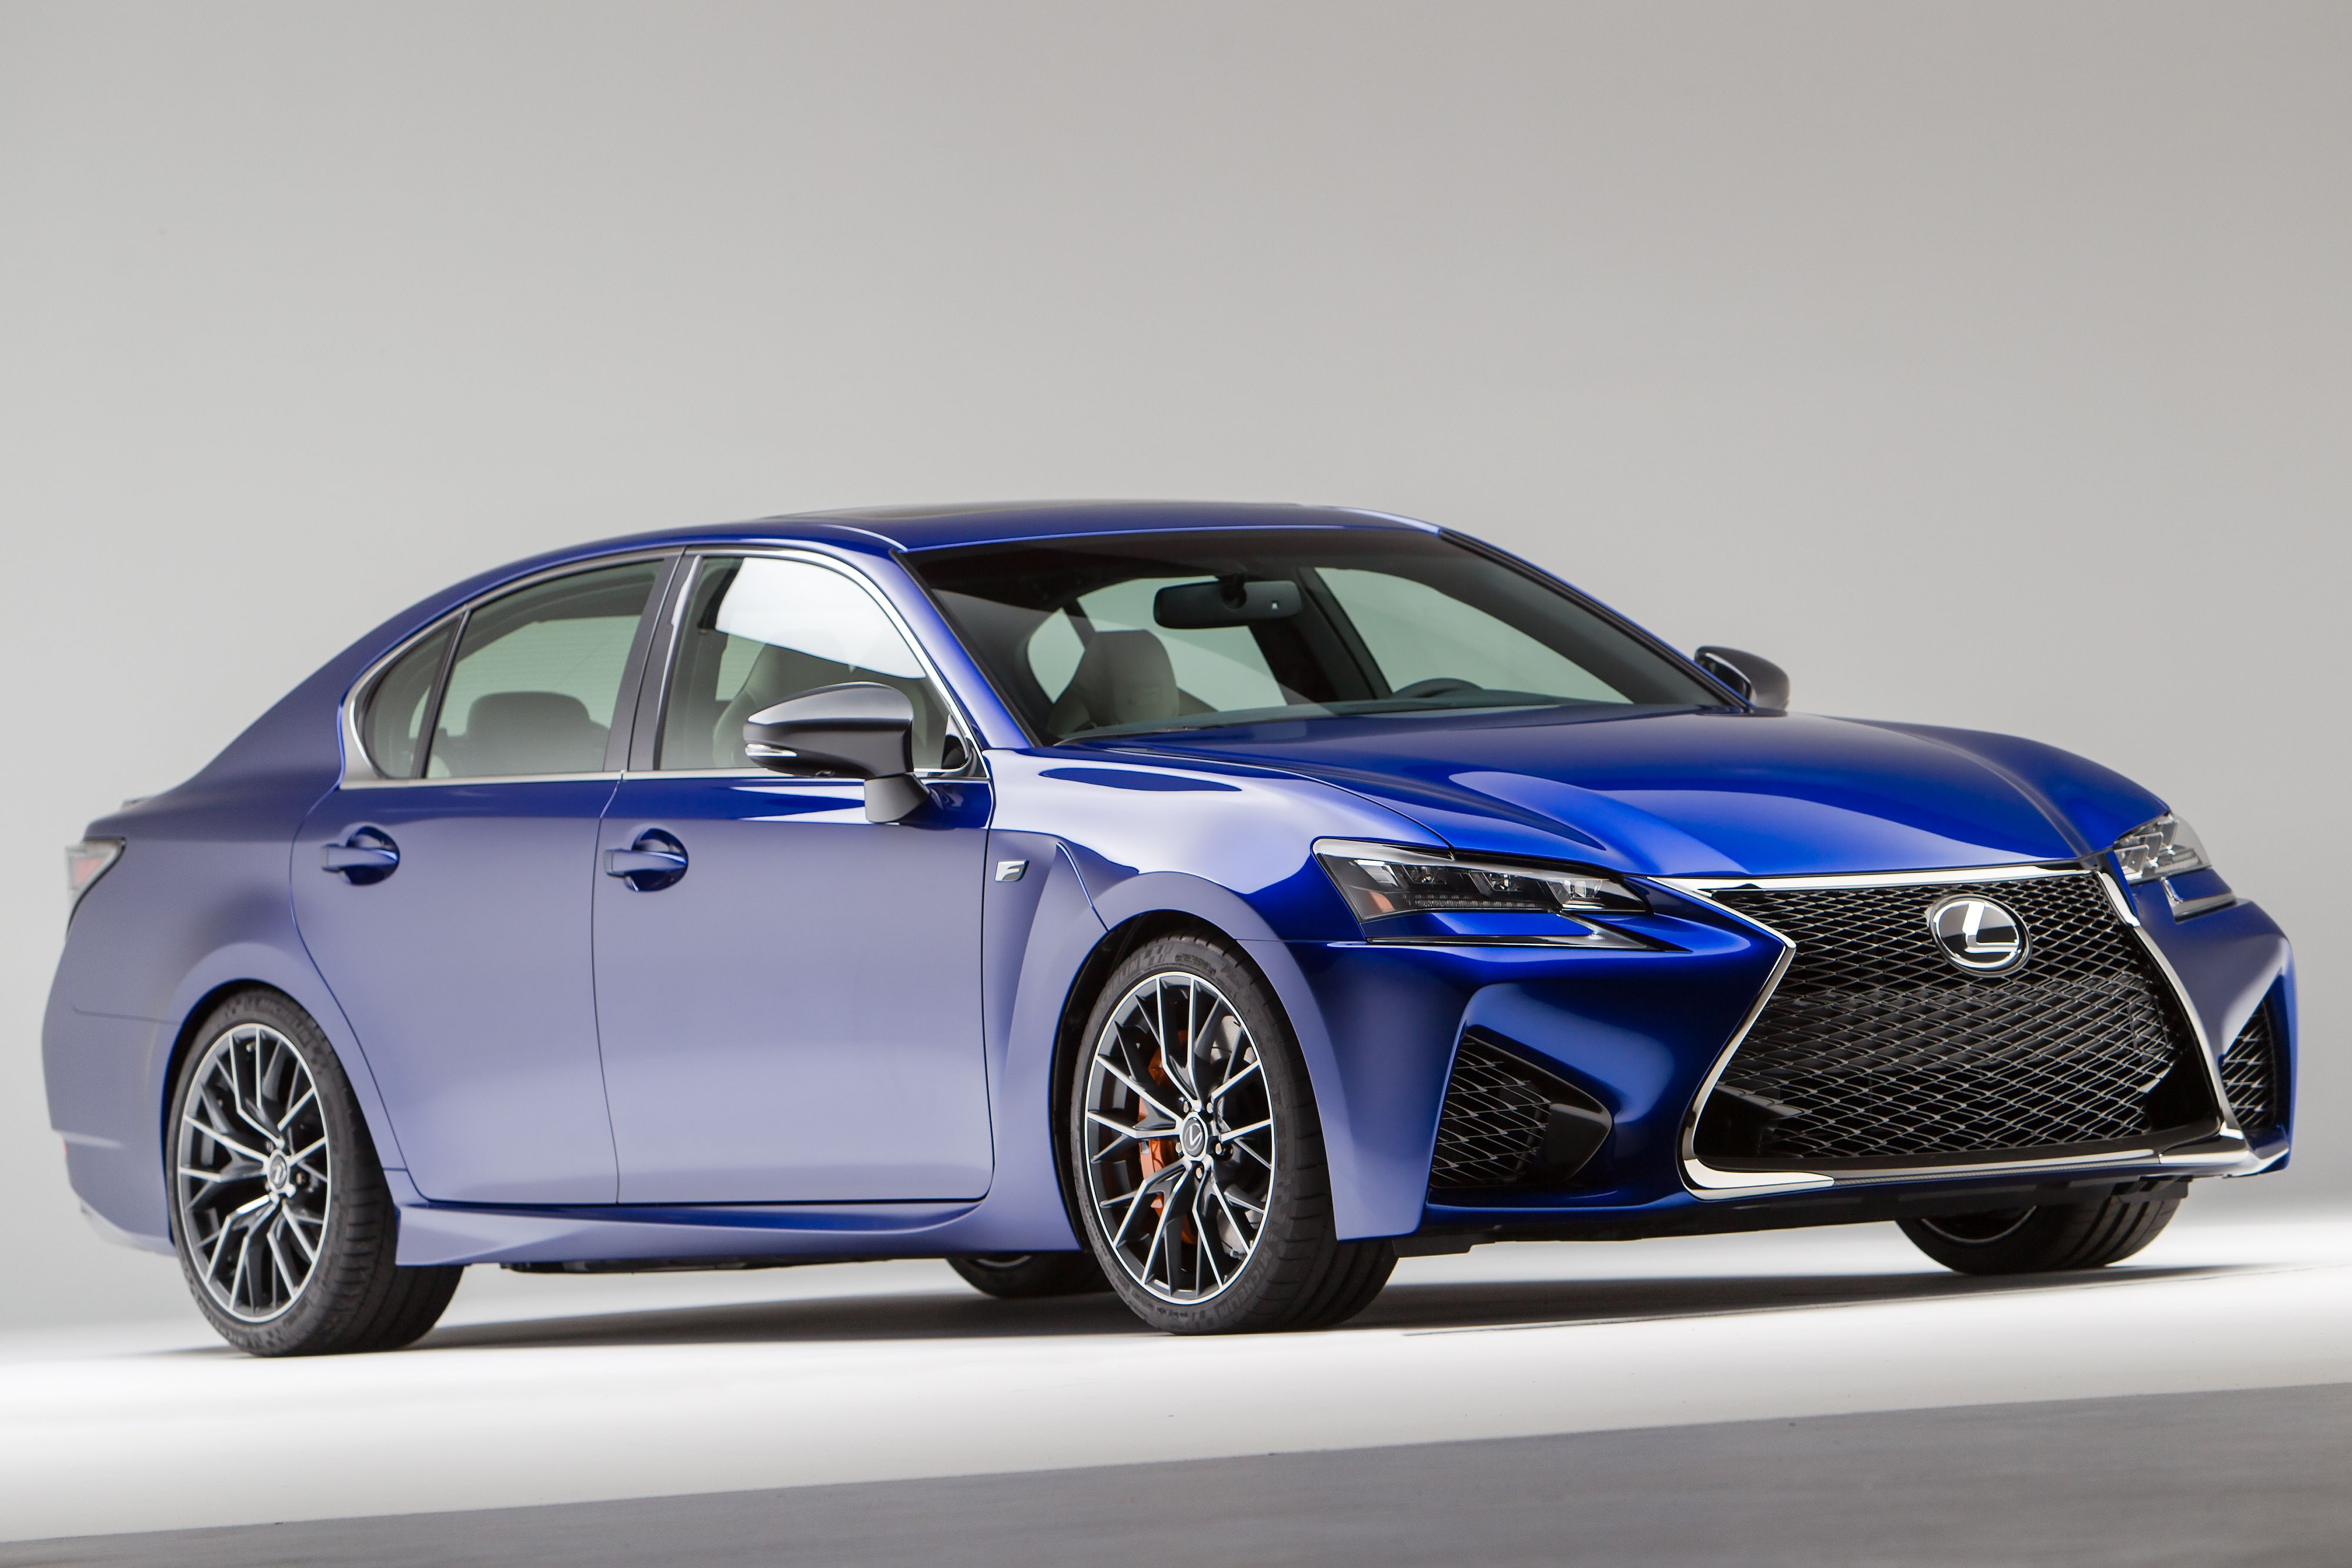 gs gears lexus liner cruising shifting in rear the luxury a